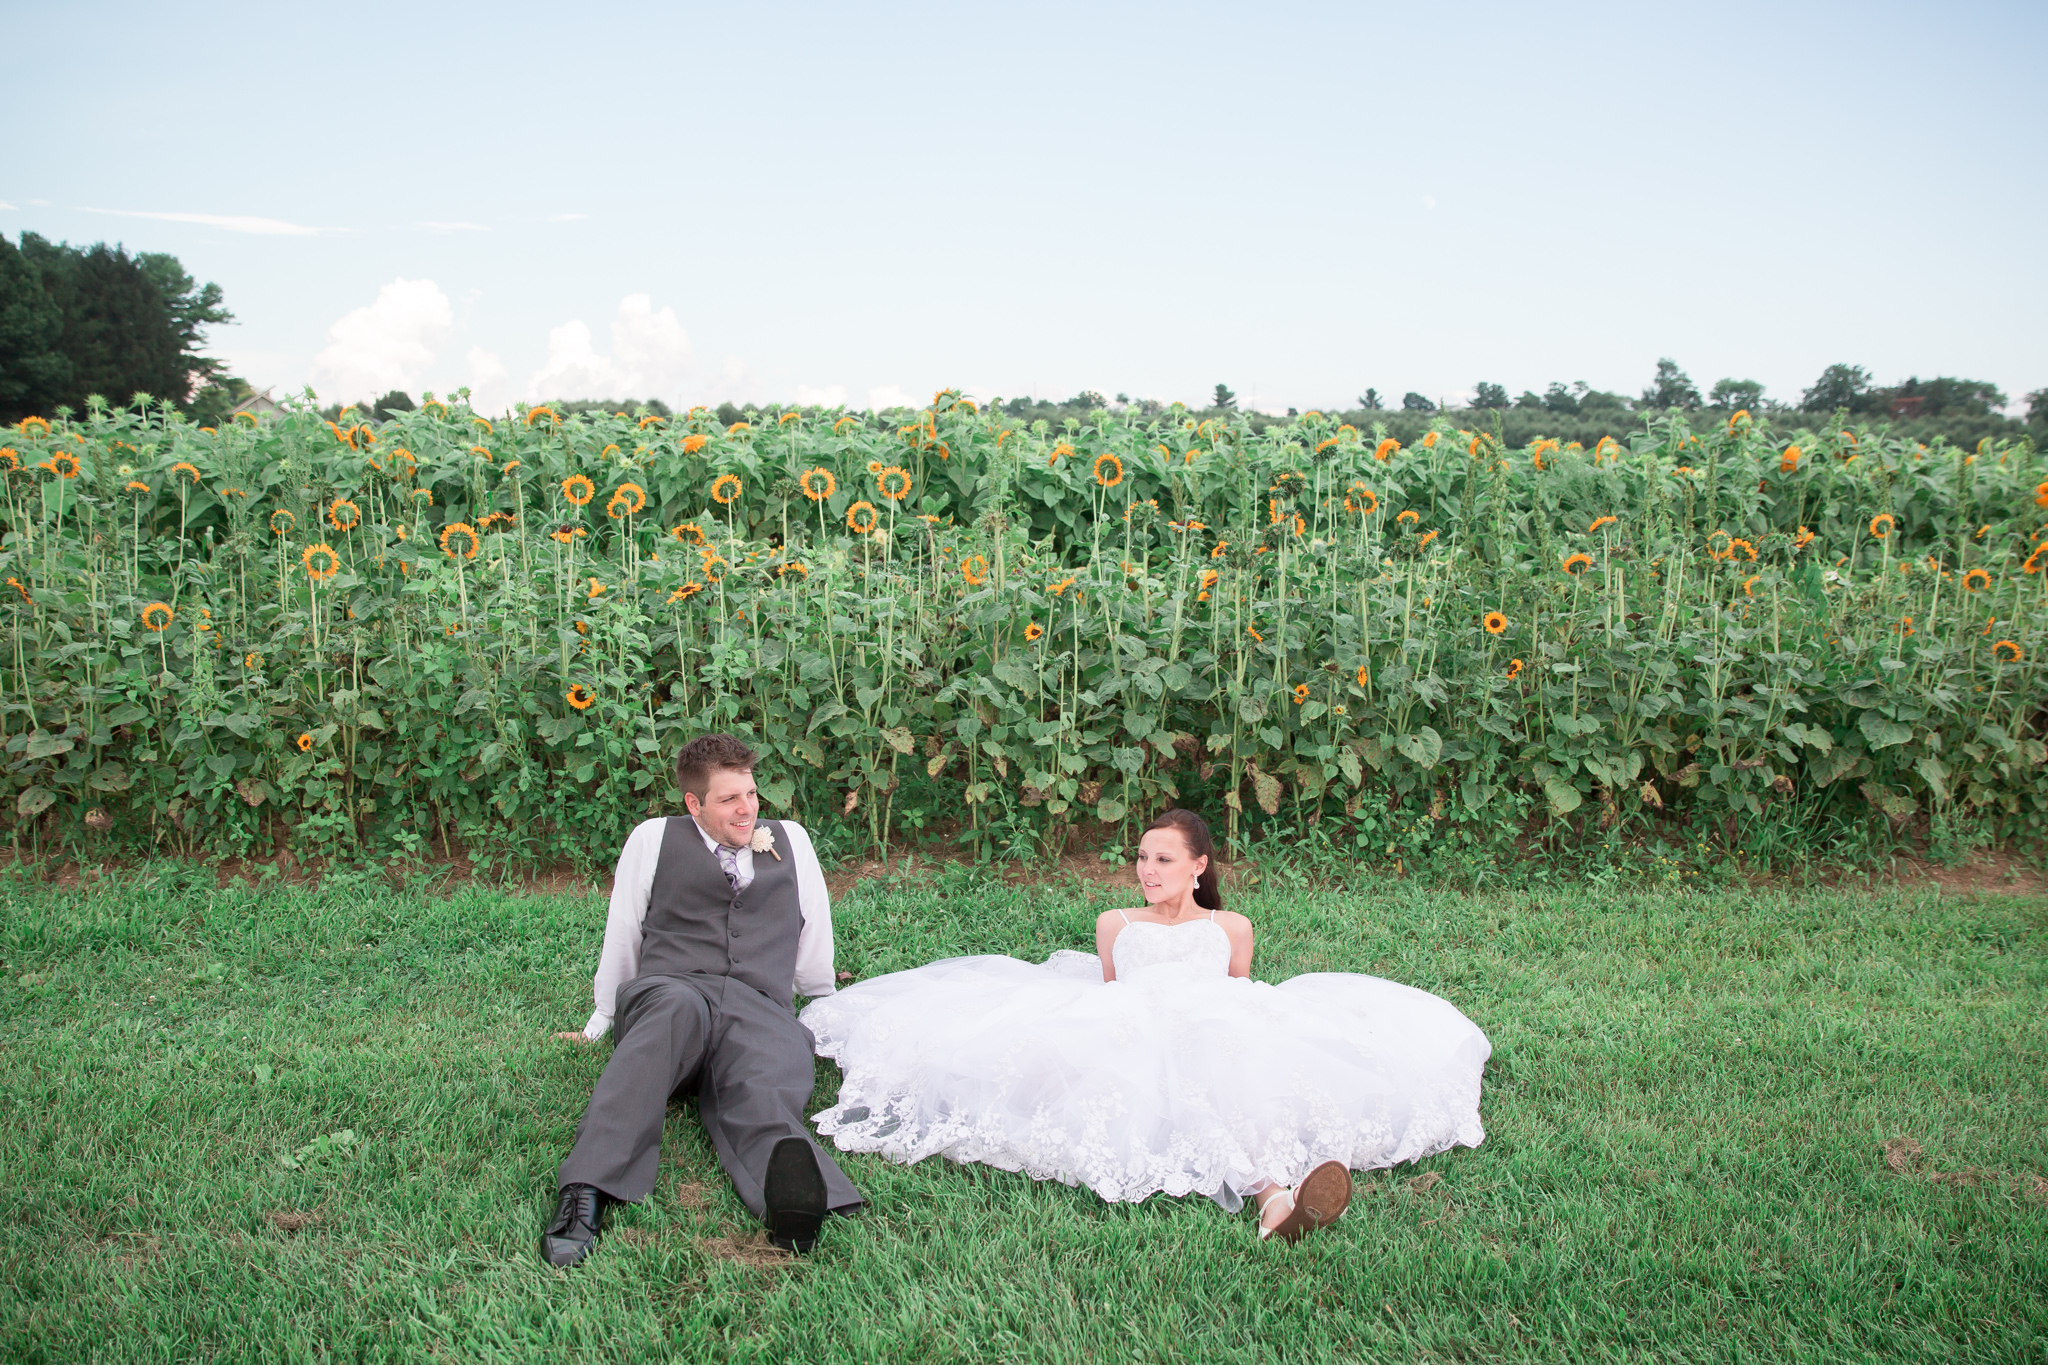 Ok, so I know this isn't a posed photo and they have soooo many awesome photos from the day! But I love how when Christina wanted a break, she had no problem just plopping down where she was....right in front of all the sunflowers :) Of course they still look awesome just chillaxin.